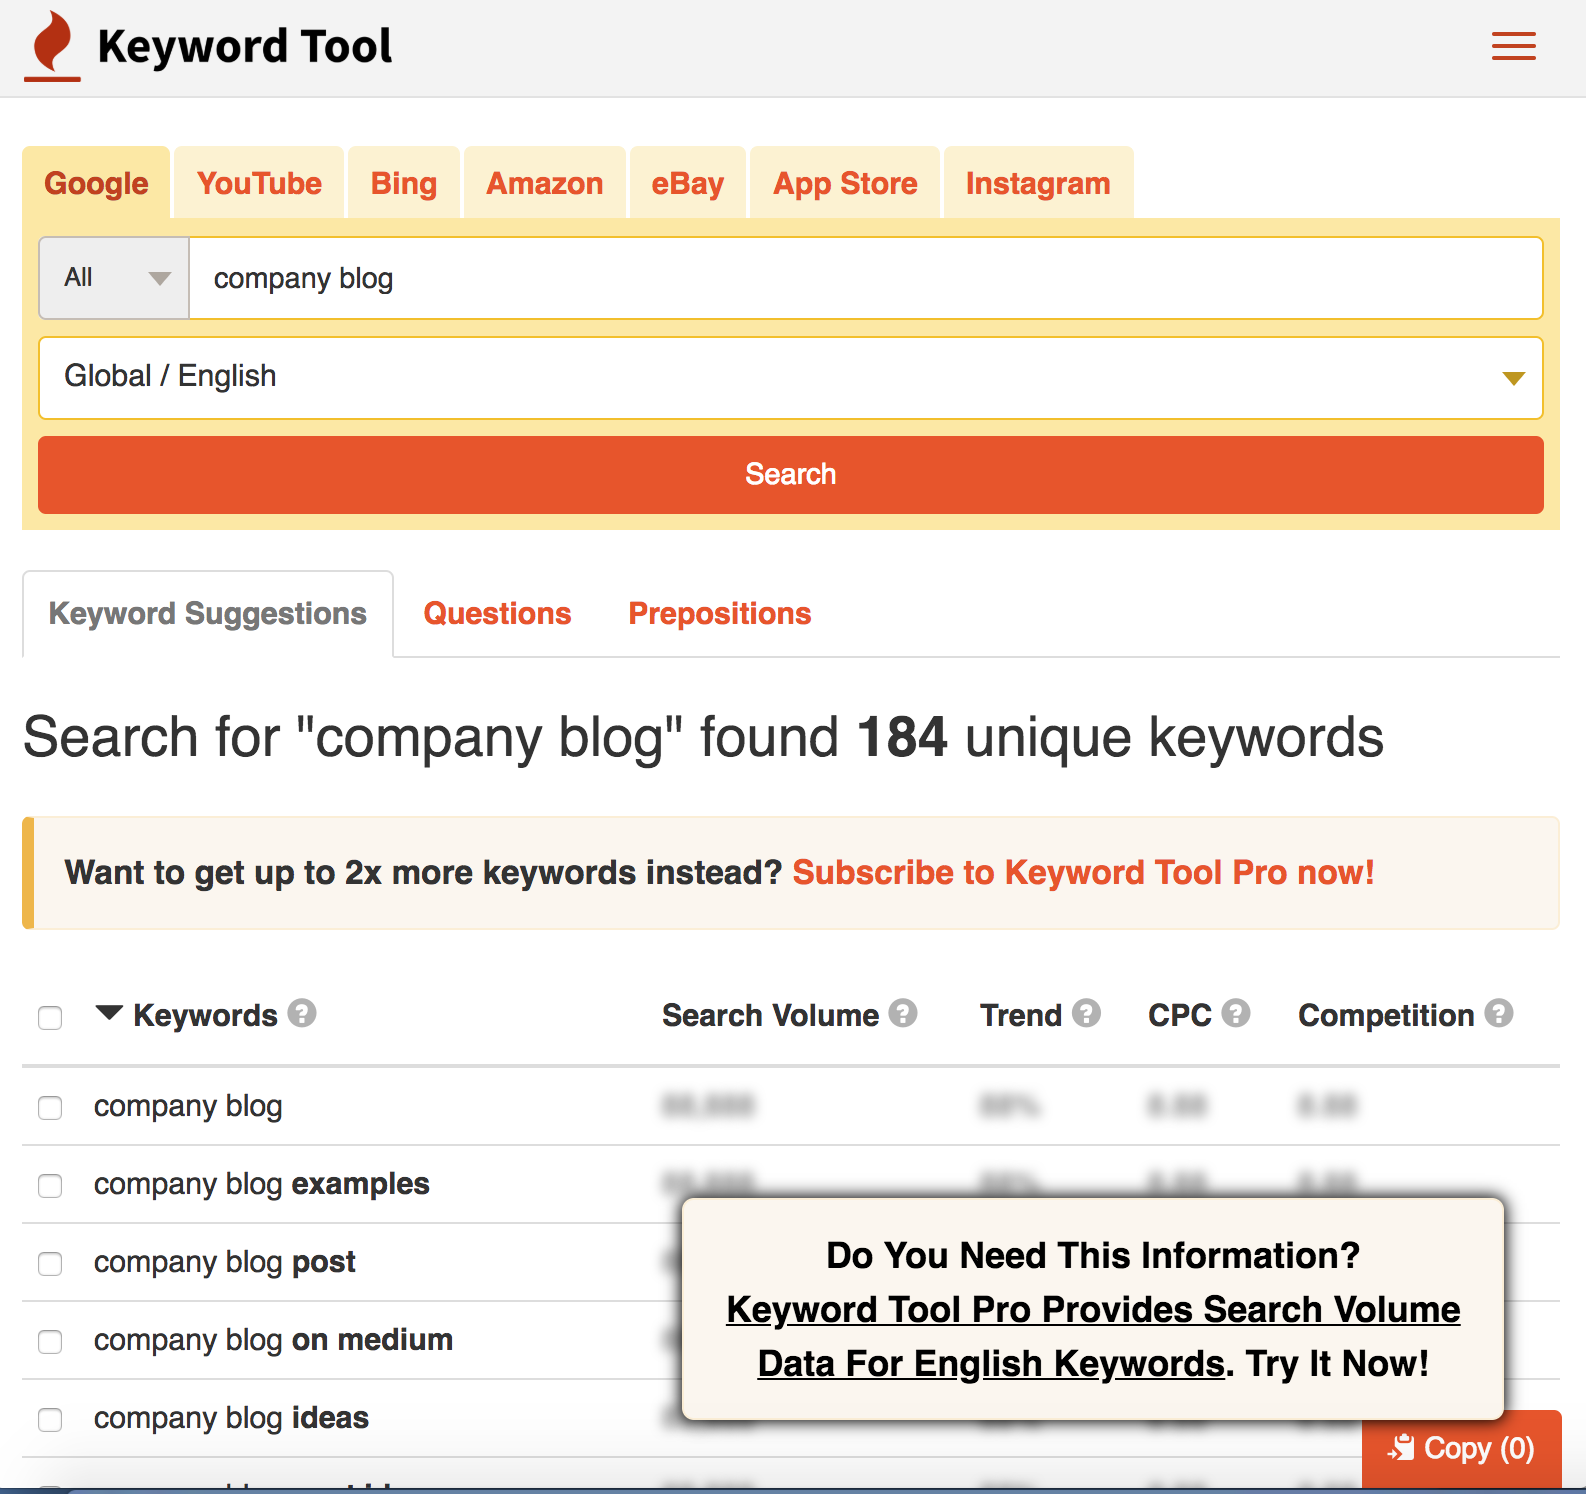 Search results for company blog using the keyword tool